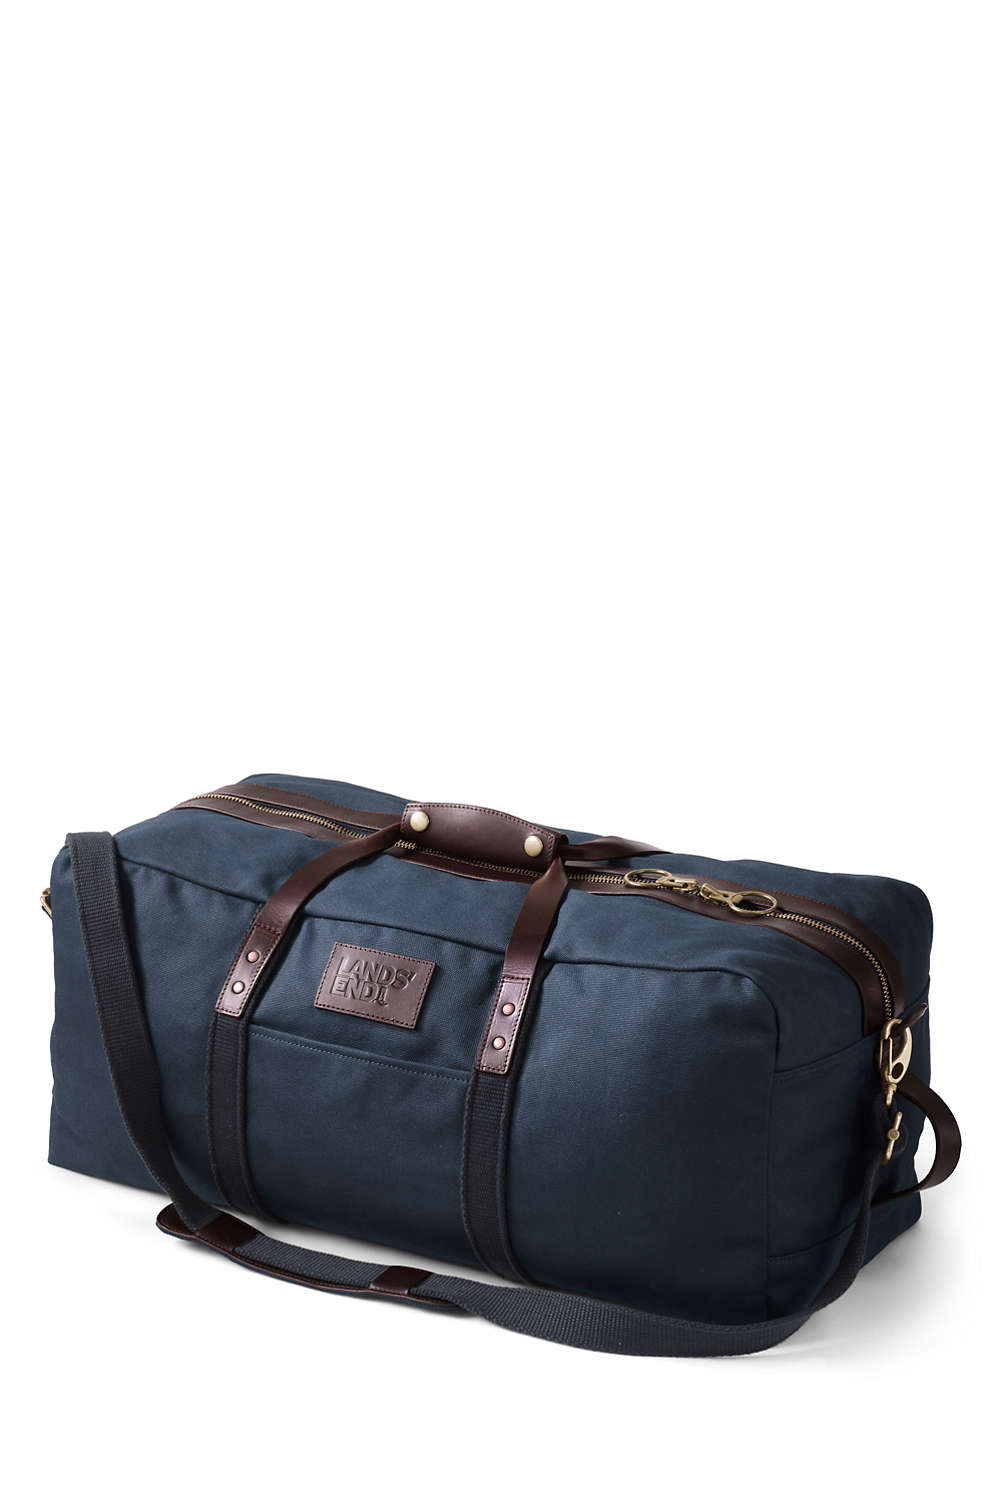 6dcf2f3ea Waxed Canvas Duffle Bag from Lands' End